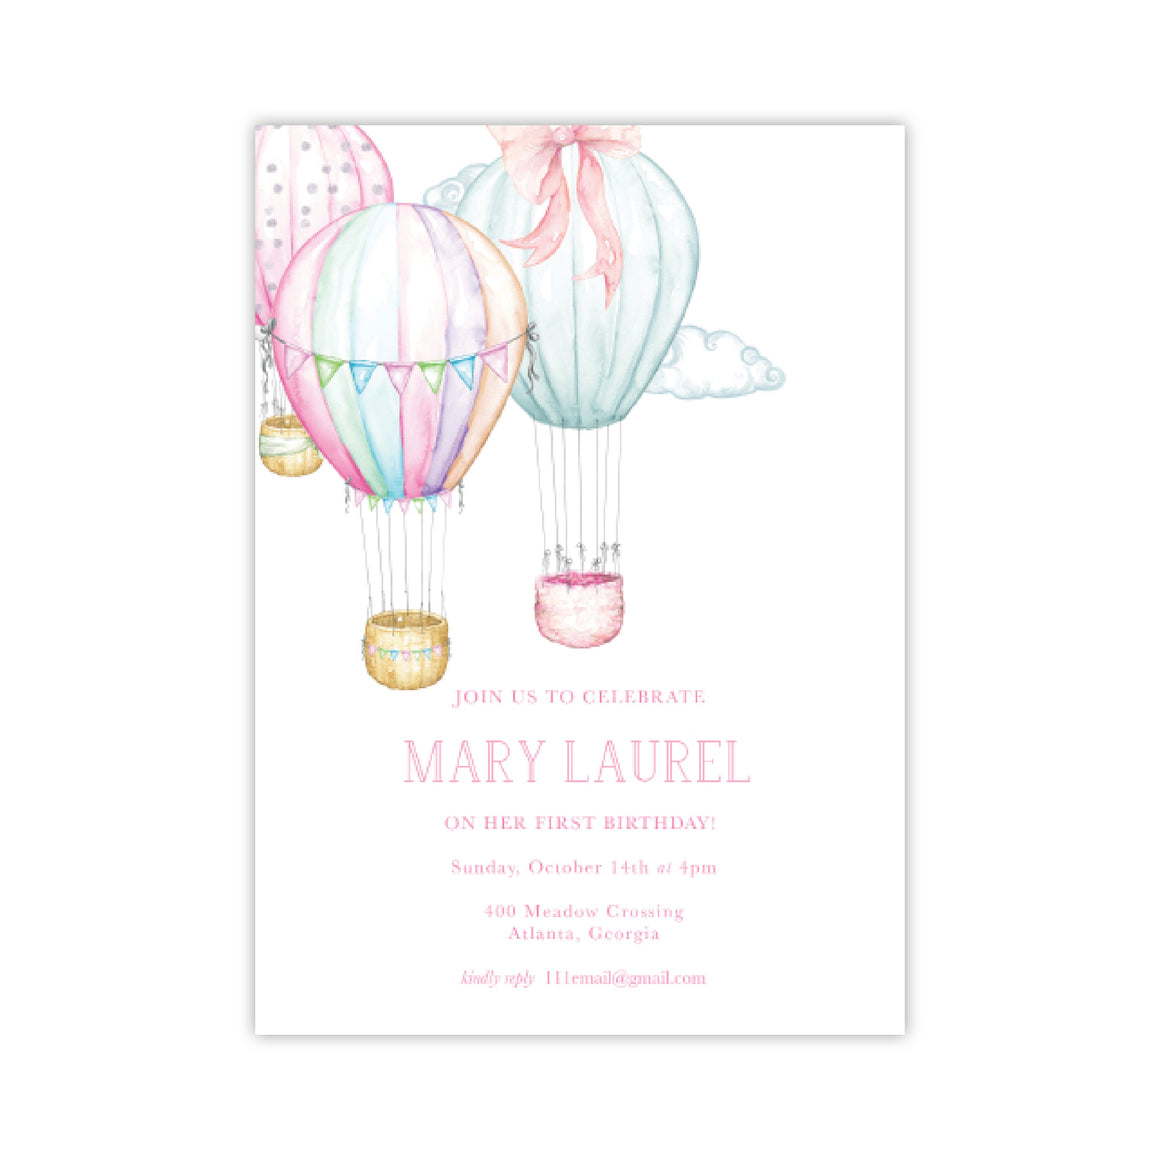 Hot Air Balloons Birthday Party Invitation